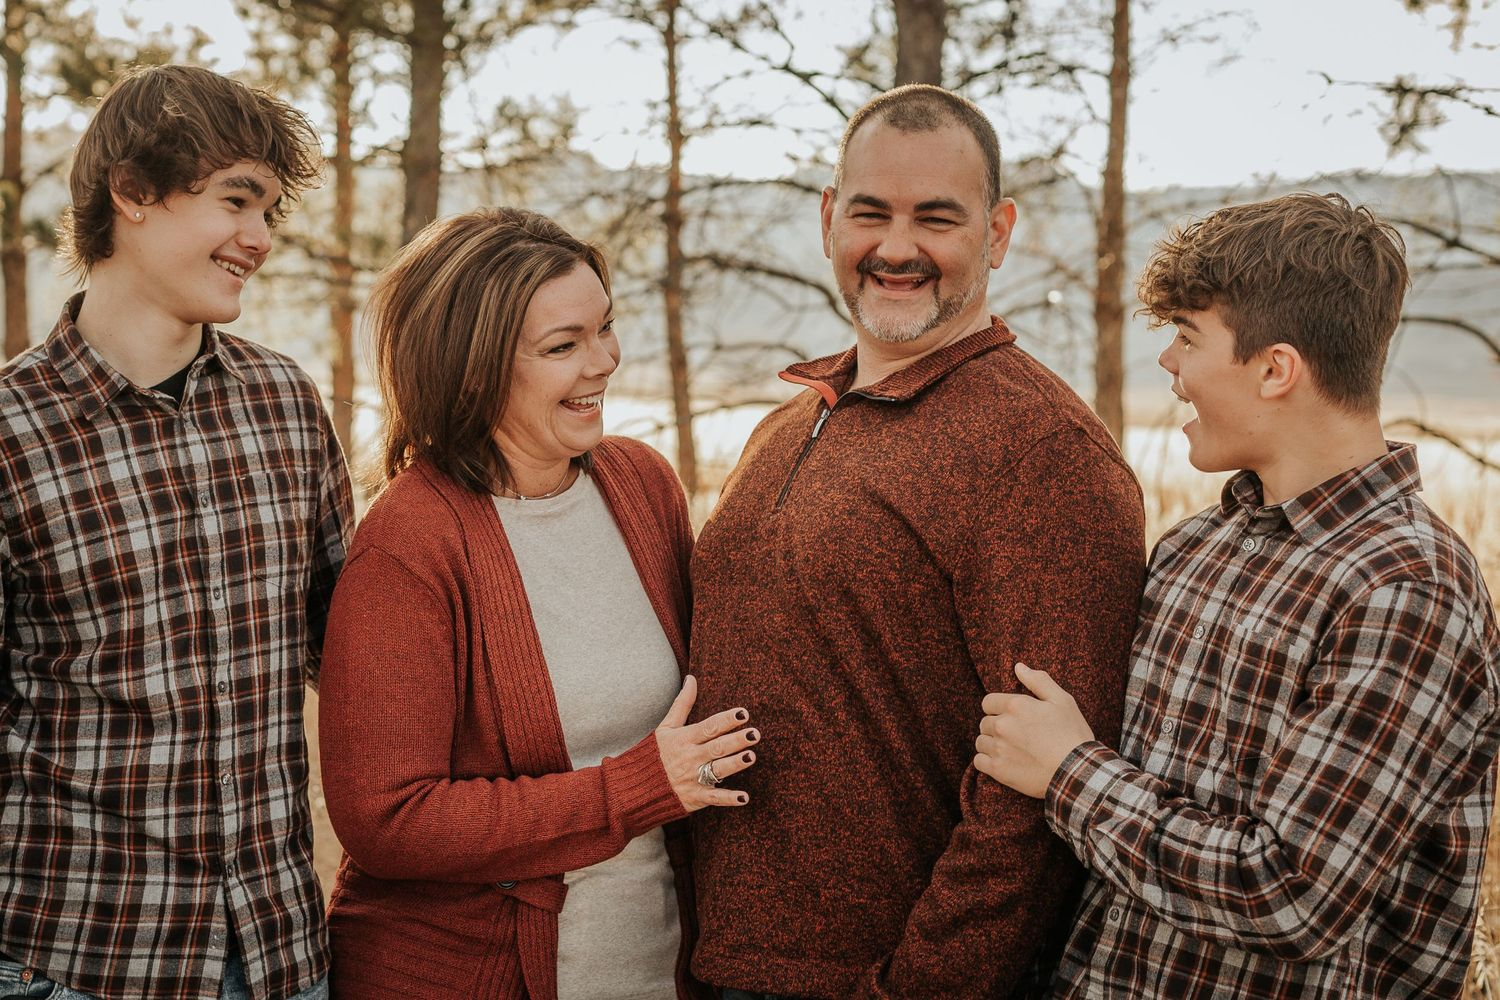 Family smiles at eachother during their Family Photography Session in Fort Collins, Colorado.